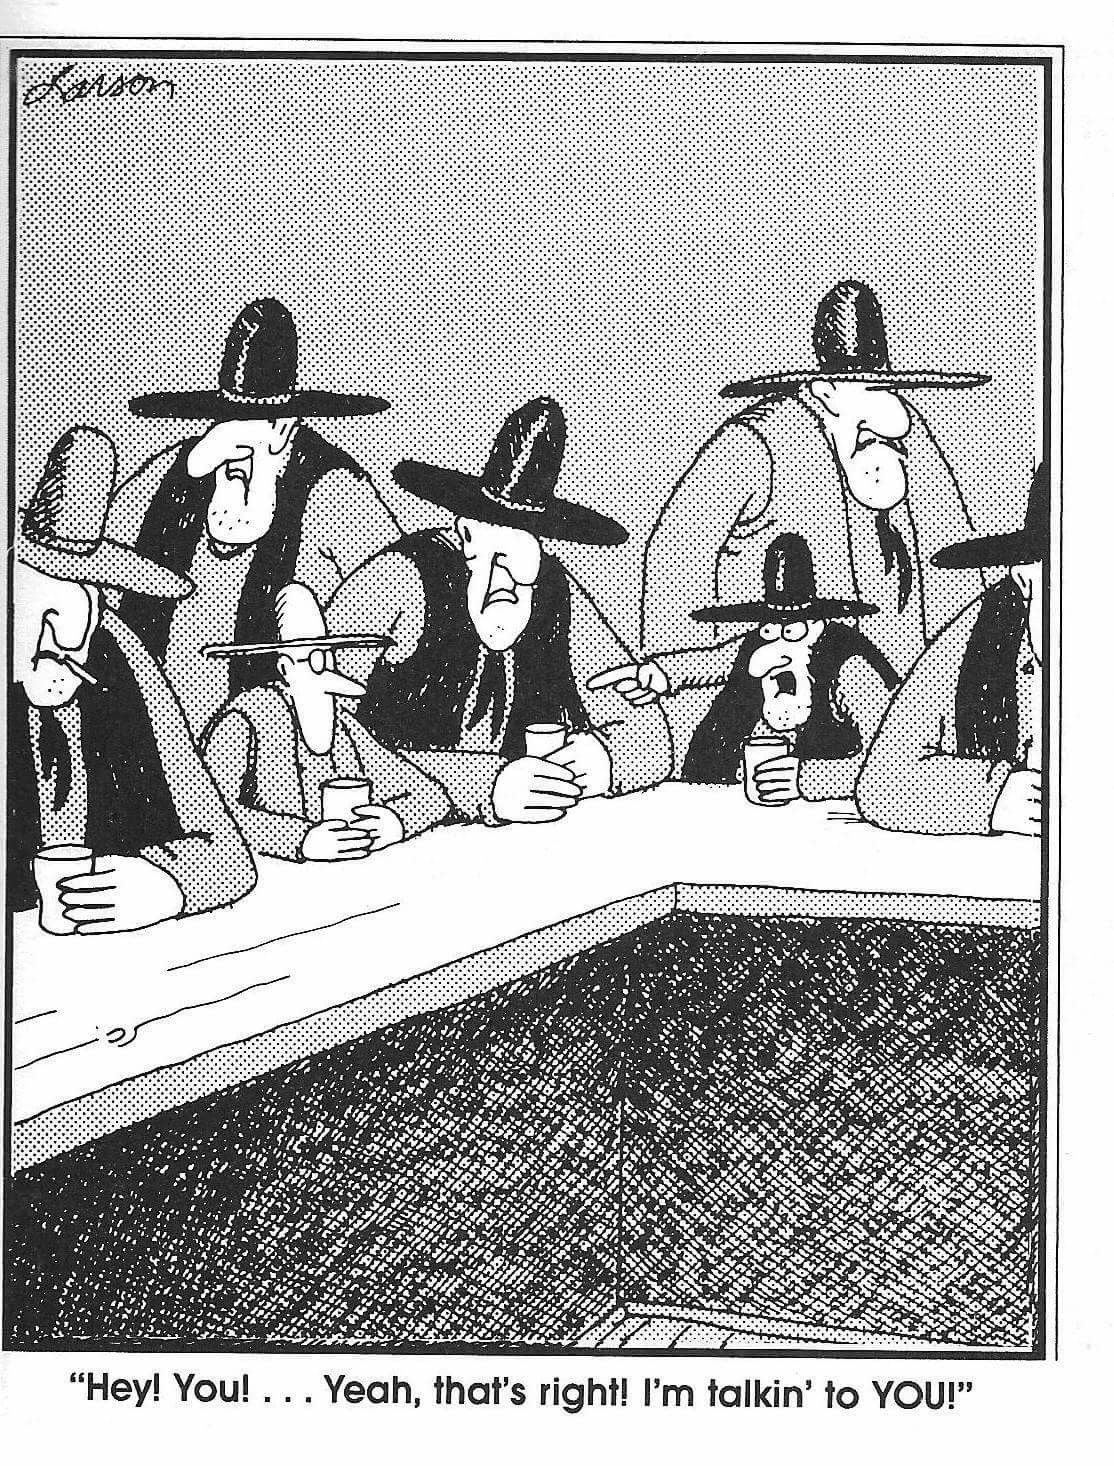 """The Far Side"""" by Gary Larson. Me? You talking to me? 